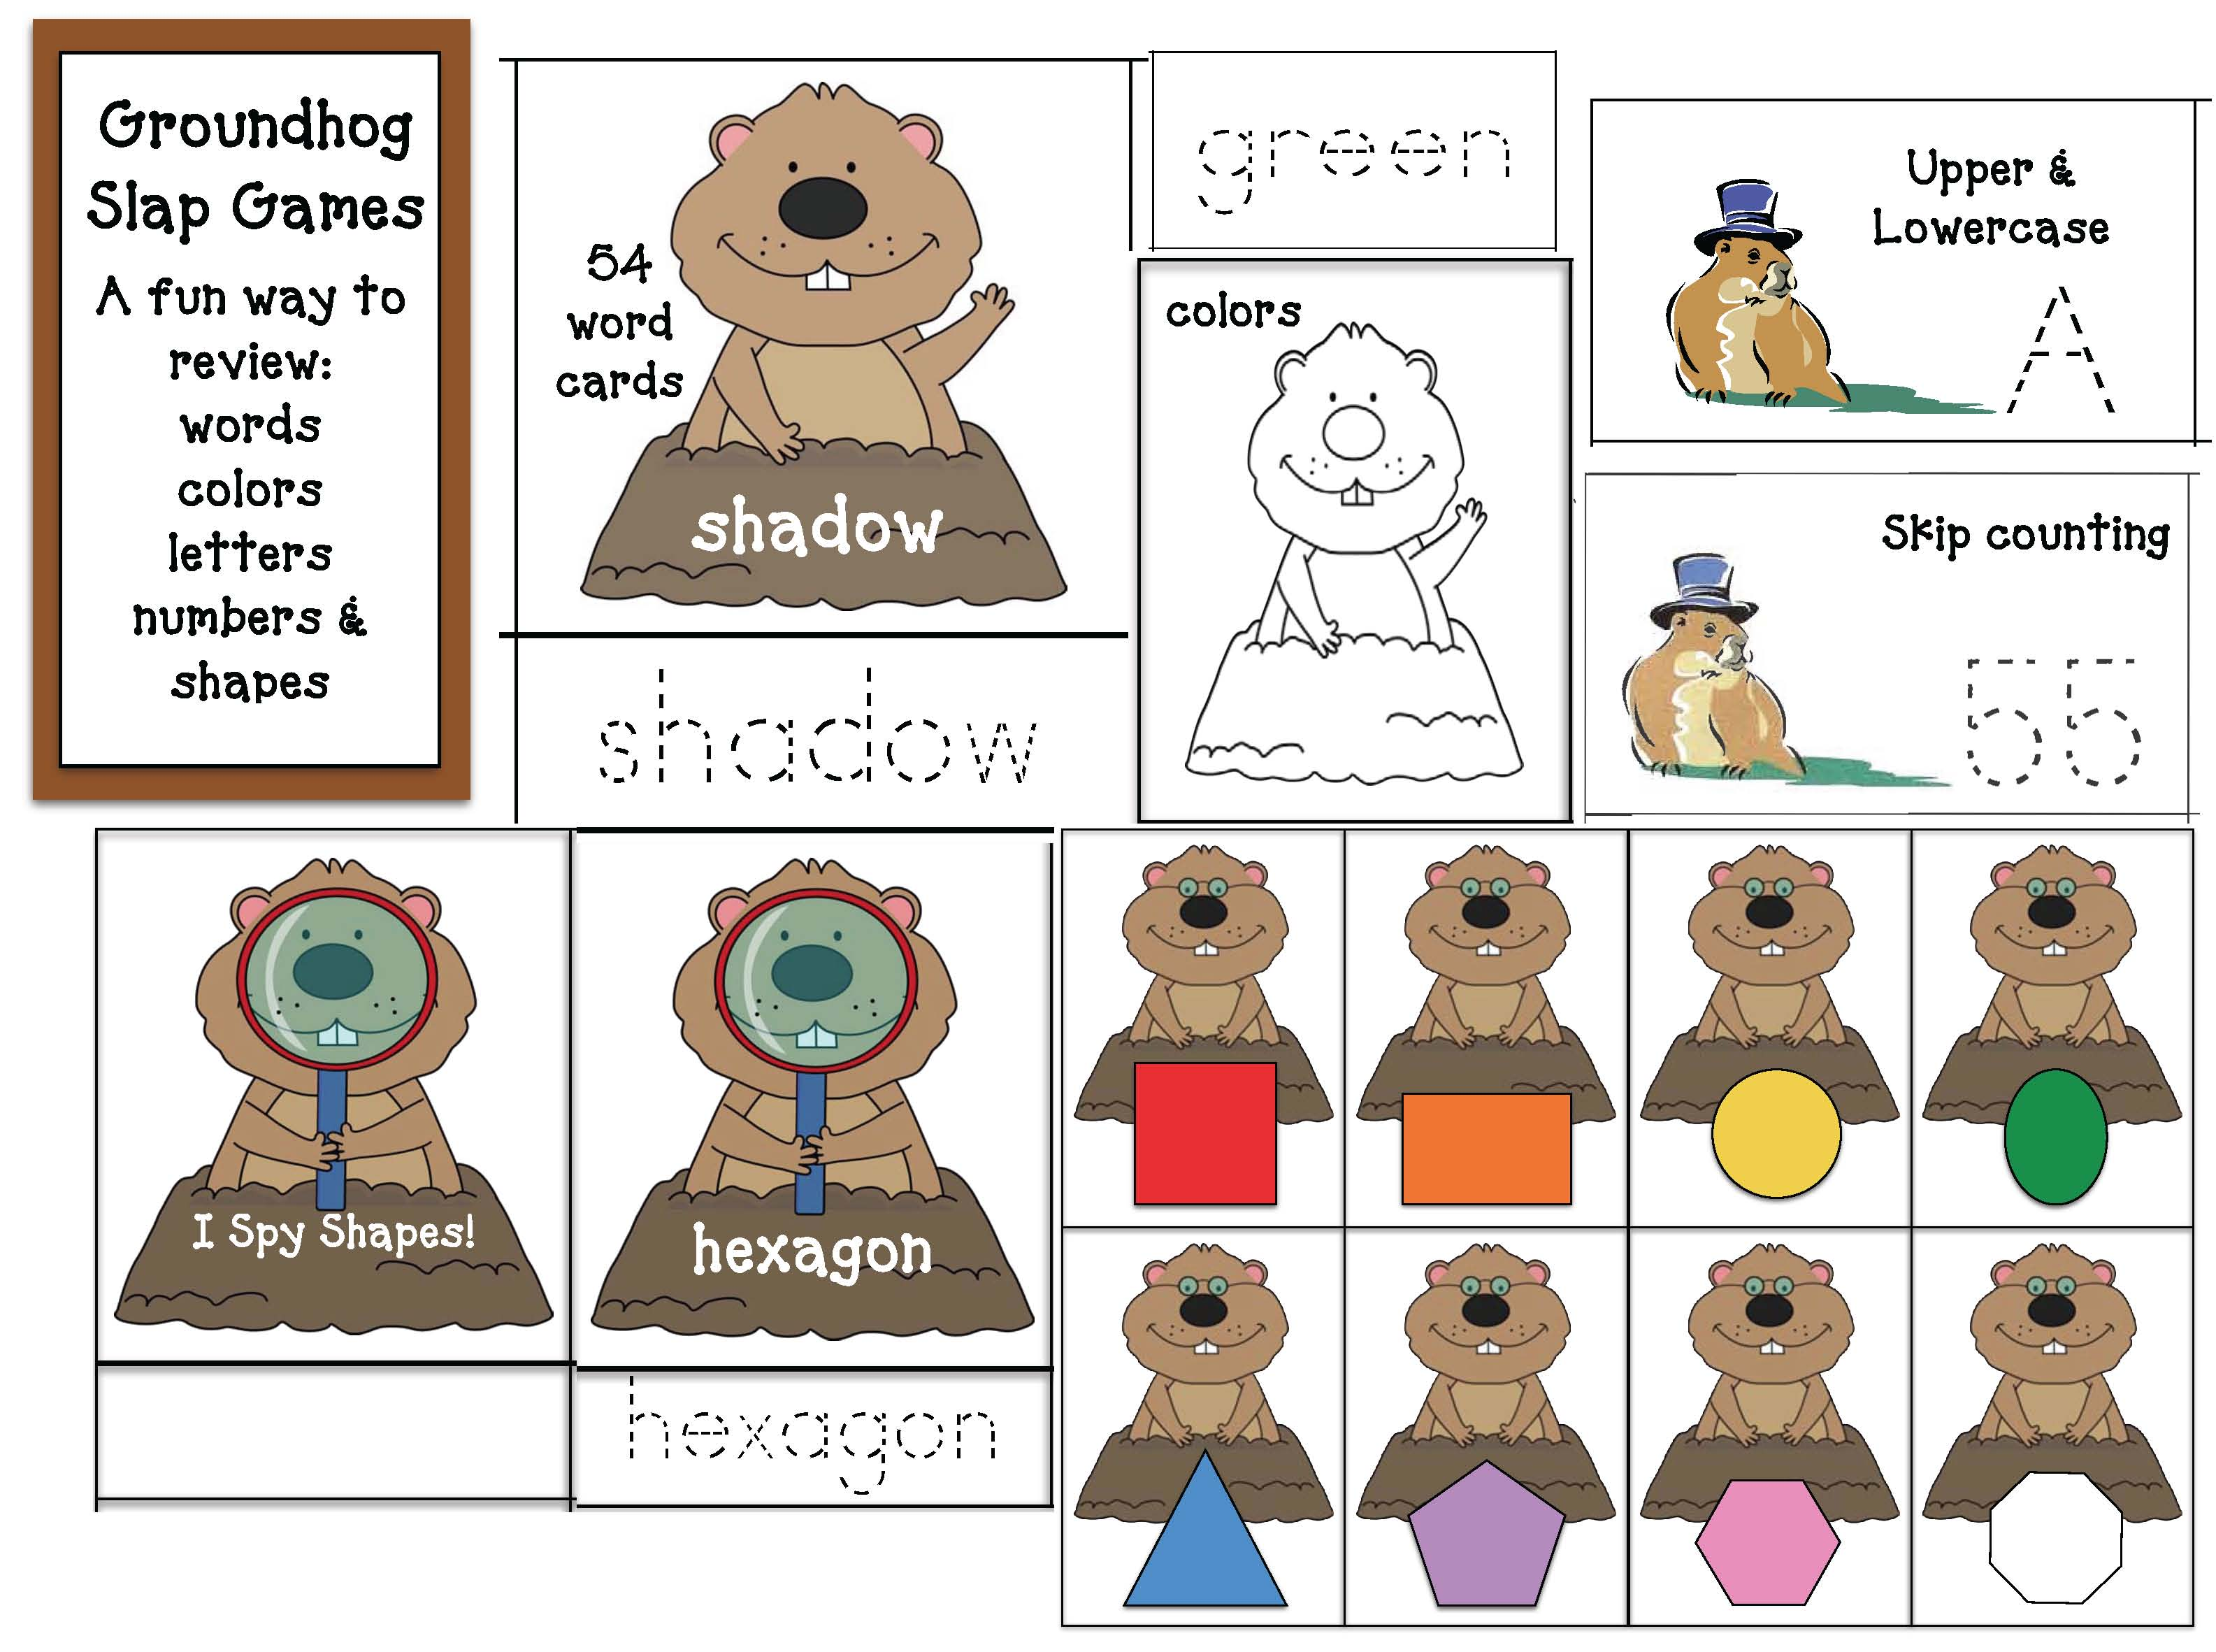 groundhog fun facts, groundhog crafts, groundhog centers, groundhog bulletin boards, groundhog games, writing prompts for February, non-fiction groundhogs, February bulletin board ideas